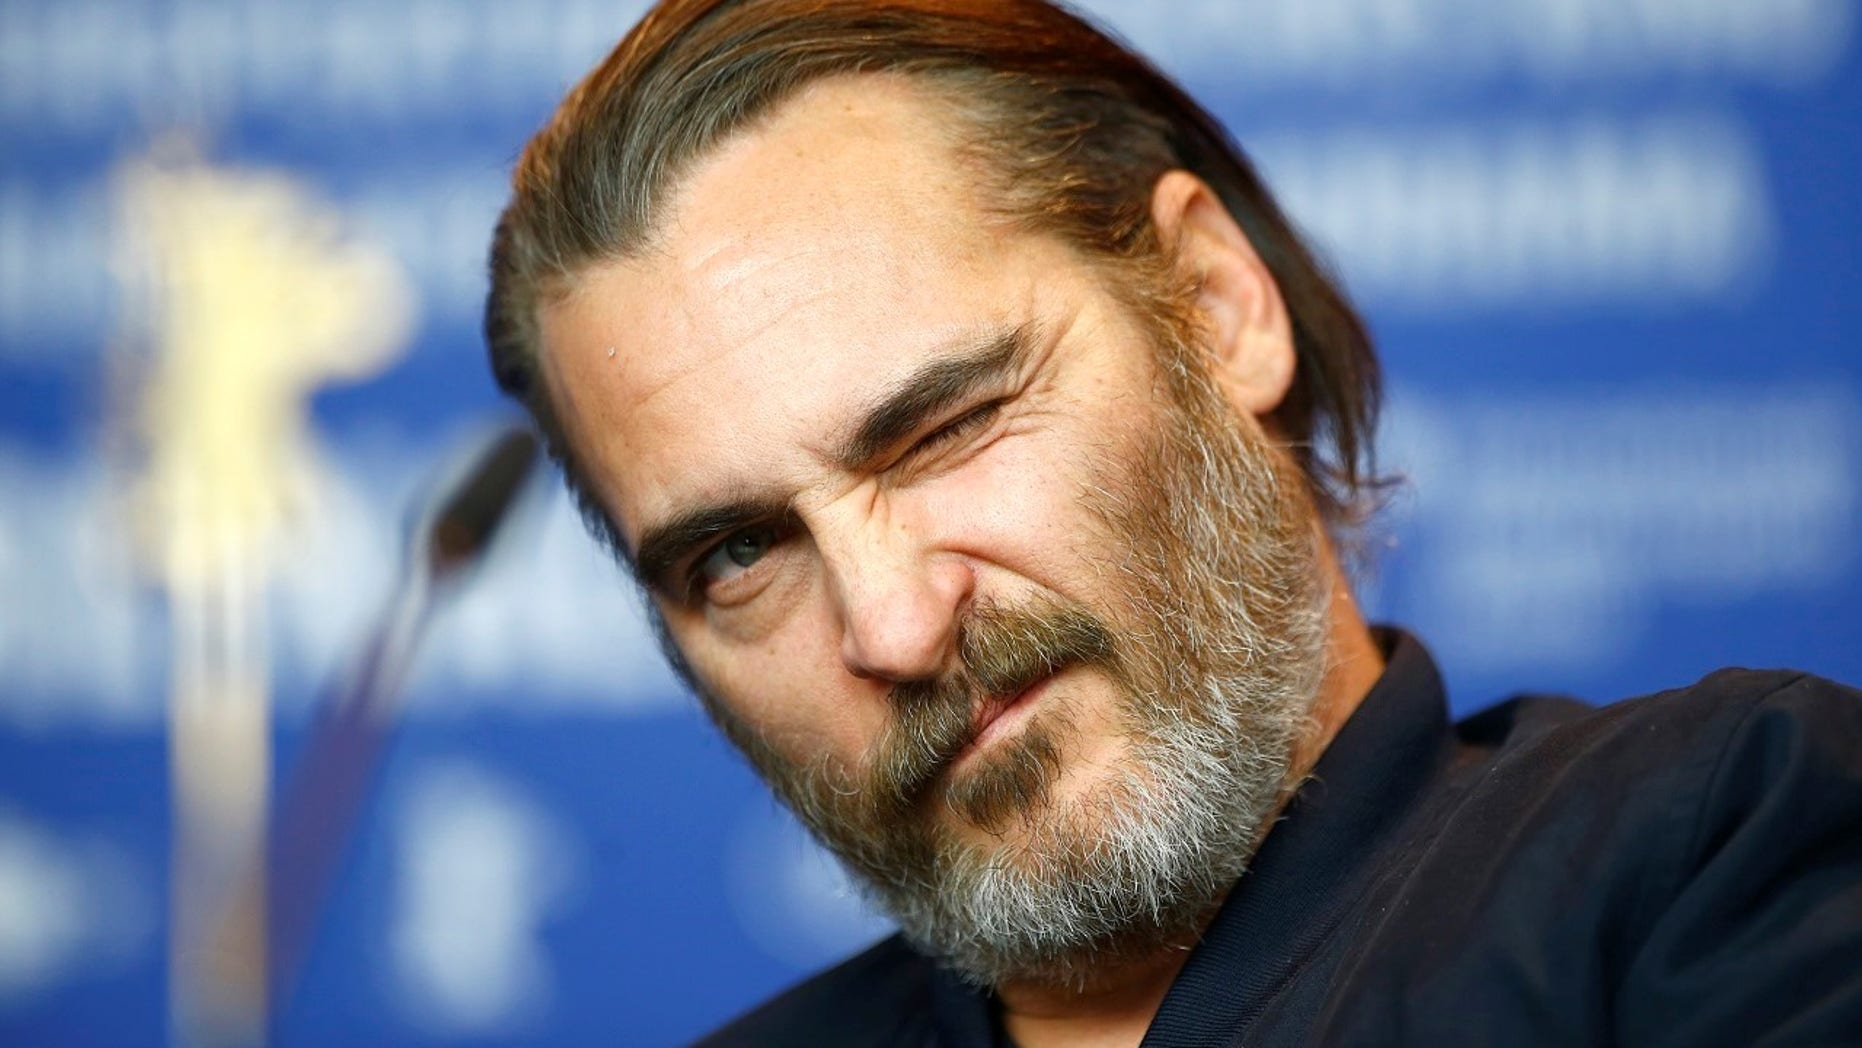 """Joaquin Phoenix said on Monday taking on the role of the Joker could be """"interesting"""" and did not deny rumors he will be playing the part."""